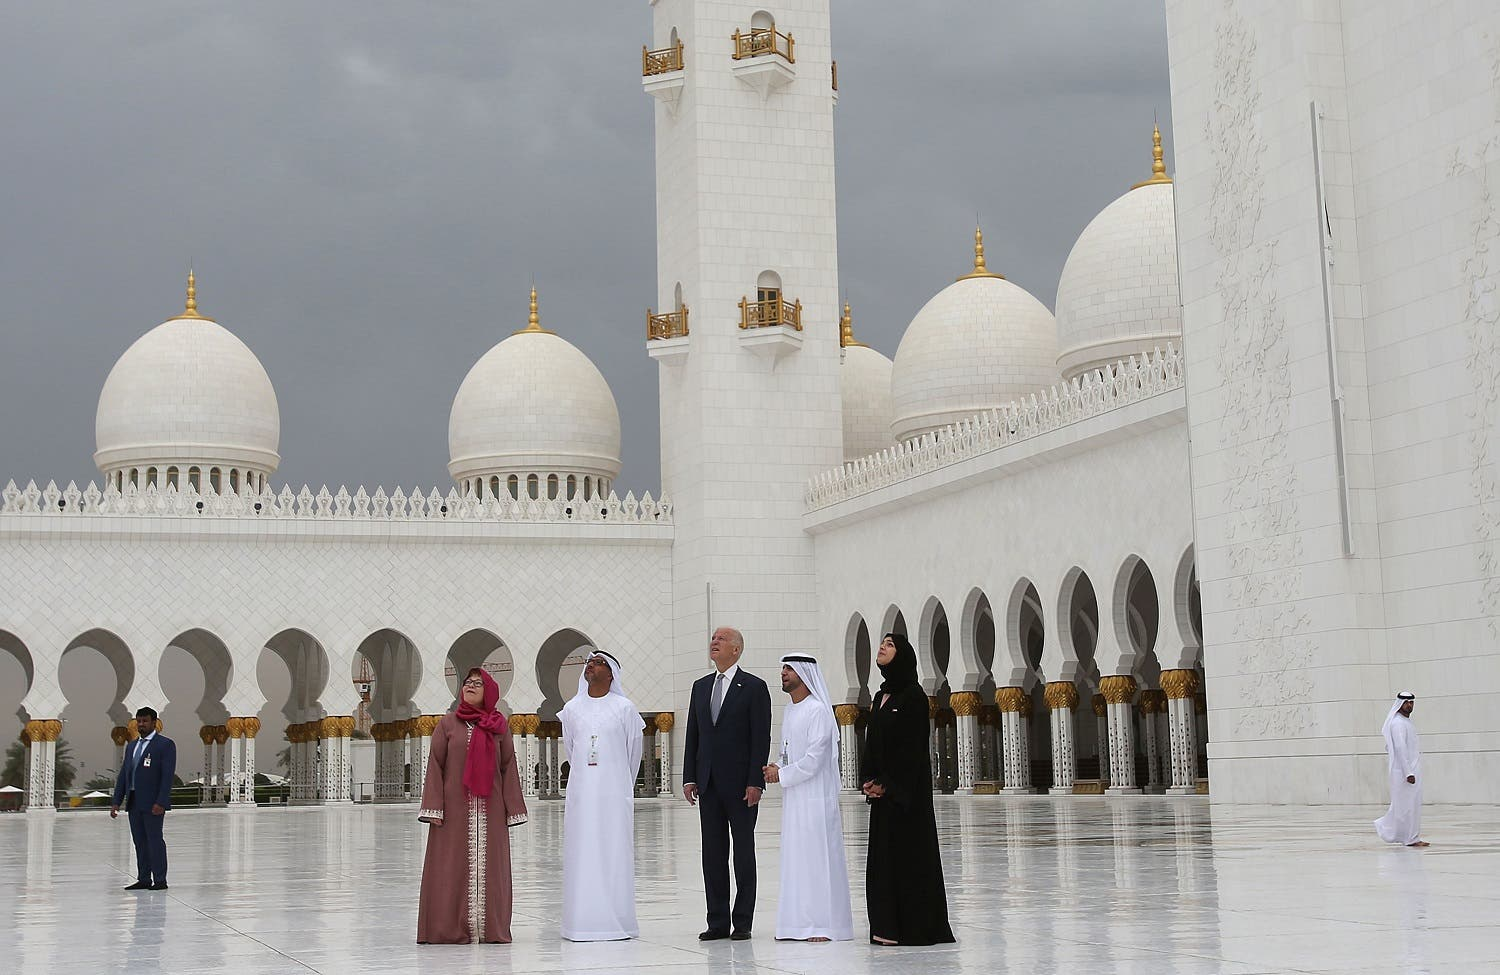 U.S. Vice President Joe Biden visits the Sheikh Zayed Grand Mosque in Abu Dhabi, United Arab Emirates, Monday, March 7, 2016. (AP Photo/Kamran Jebreili)